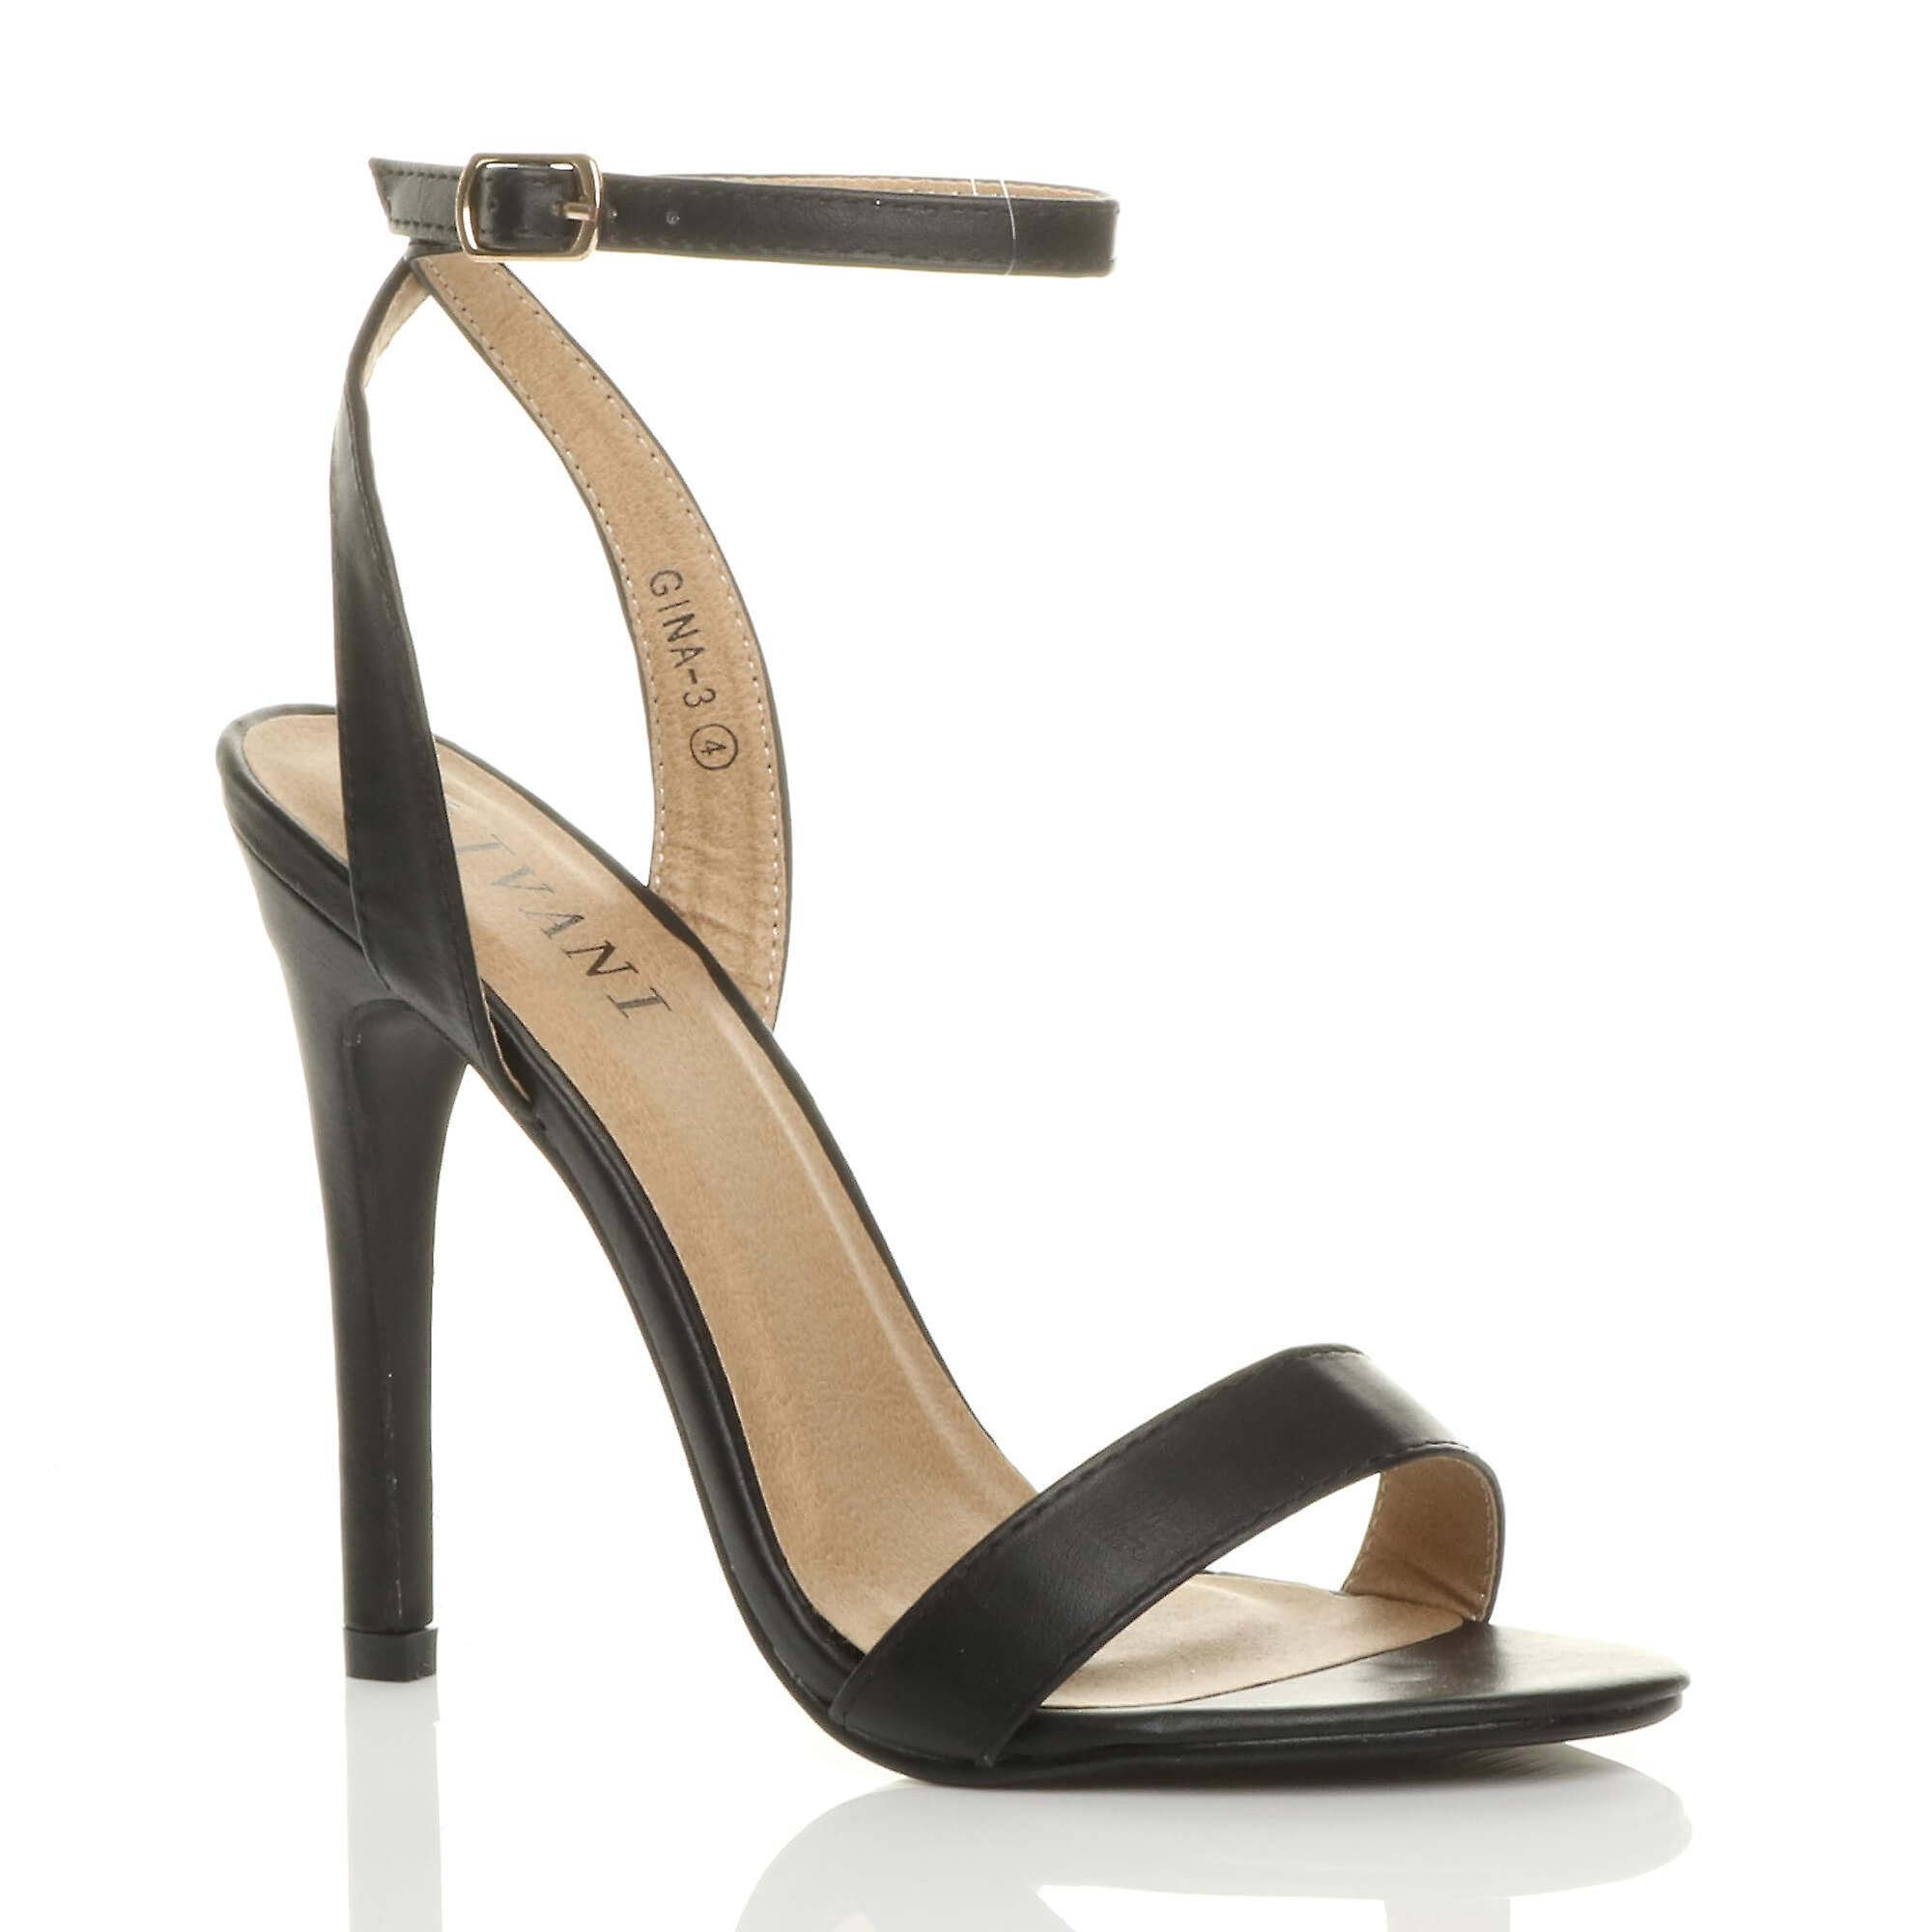 Ajvani womens high heel platform ankle strap shoes-Fashionable barely there strappy sandals shoes-Fashionable strap and Attractive Packages-Men's/Women's e7614e